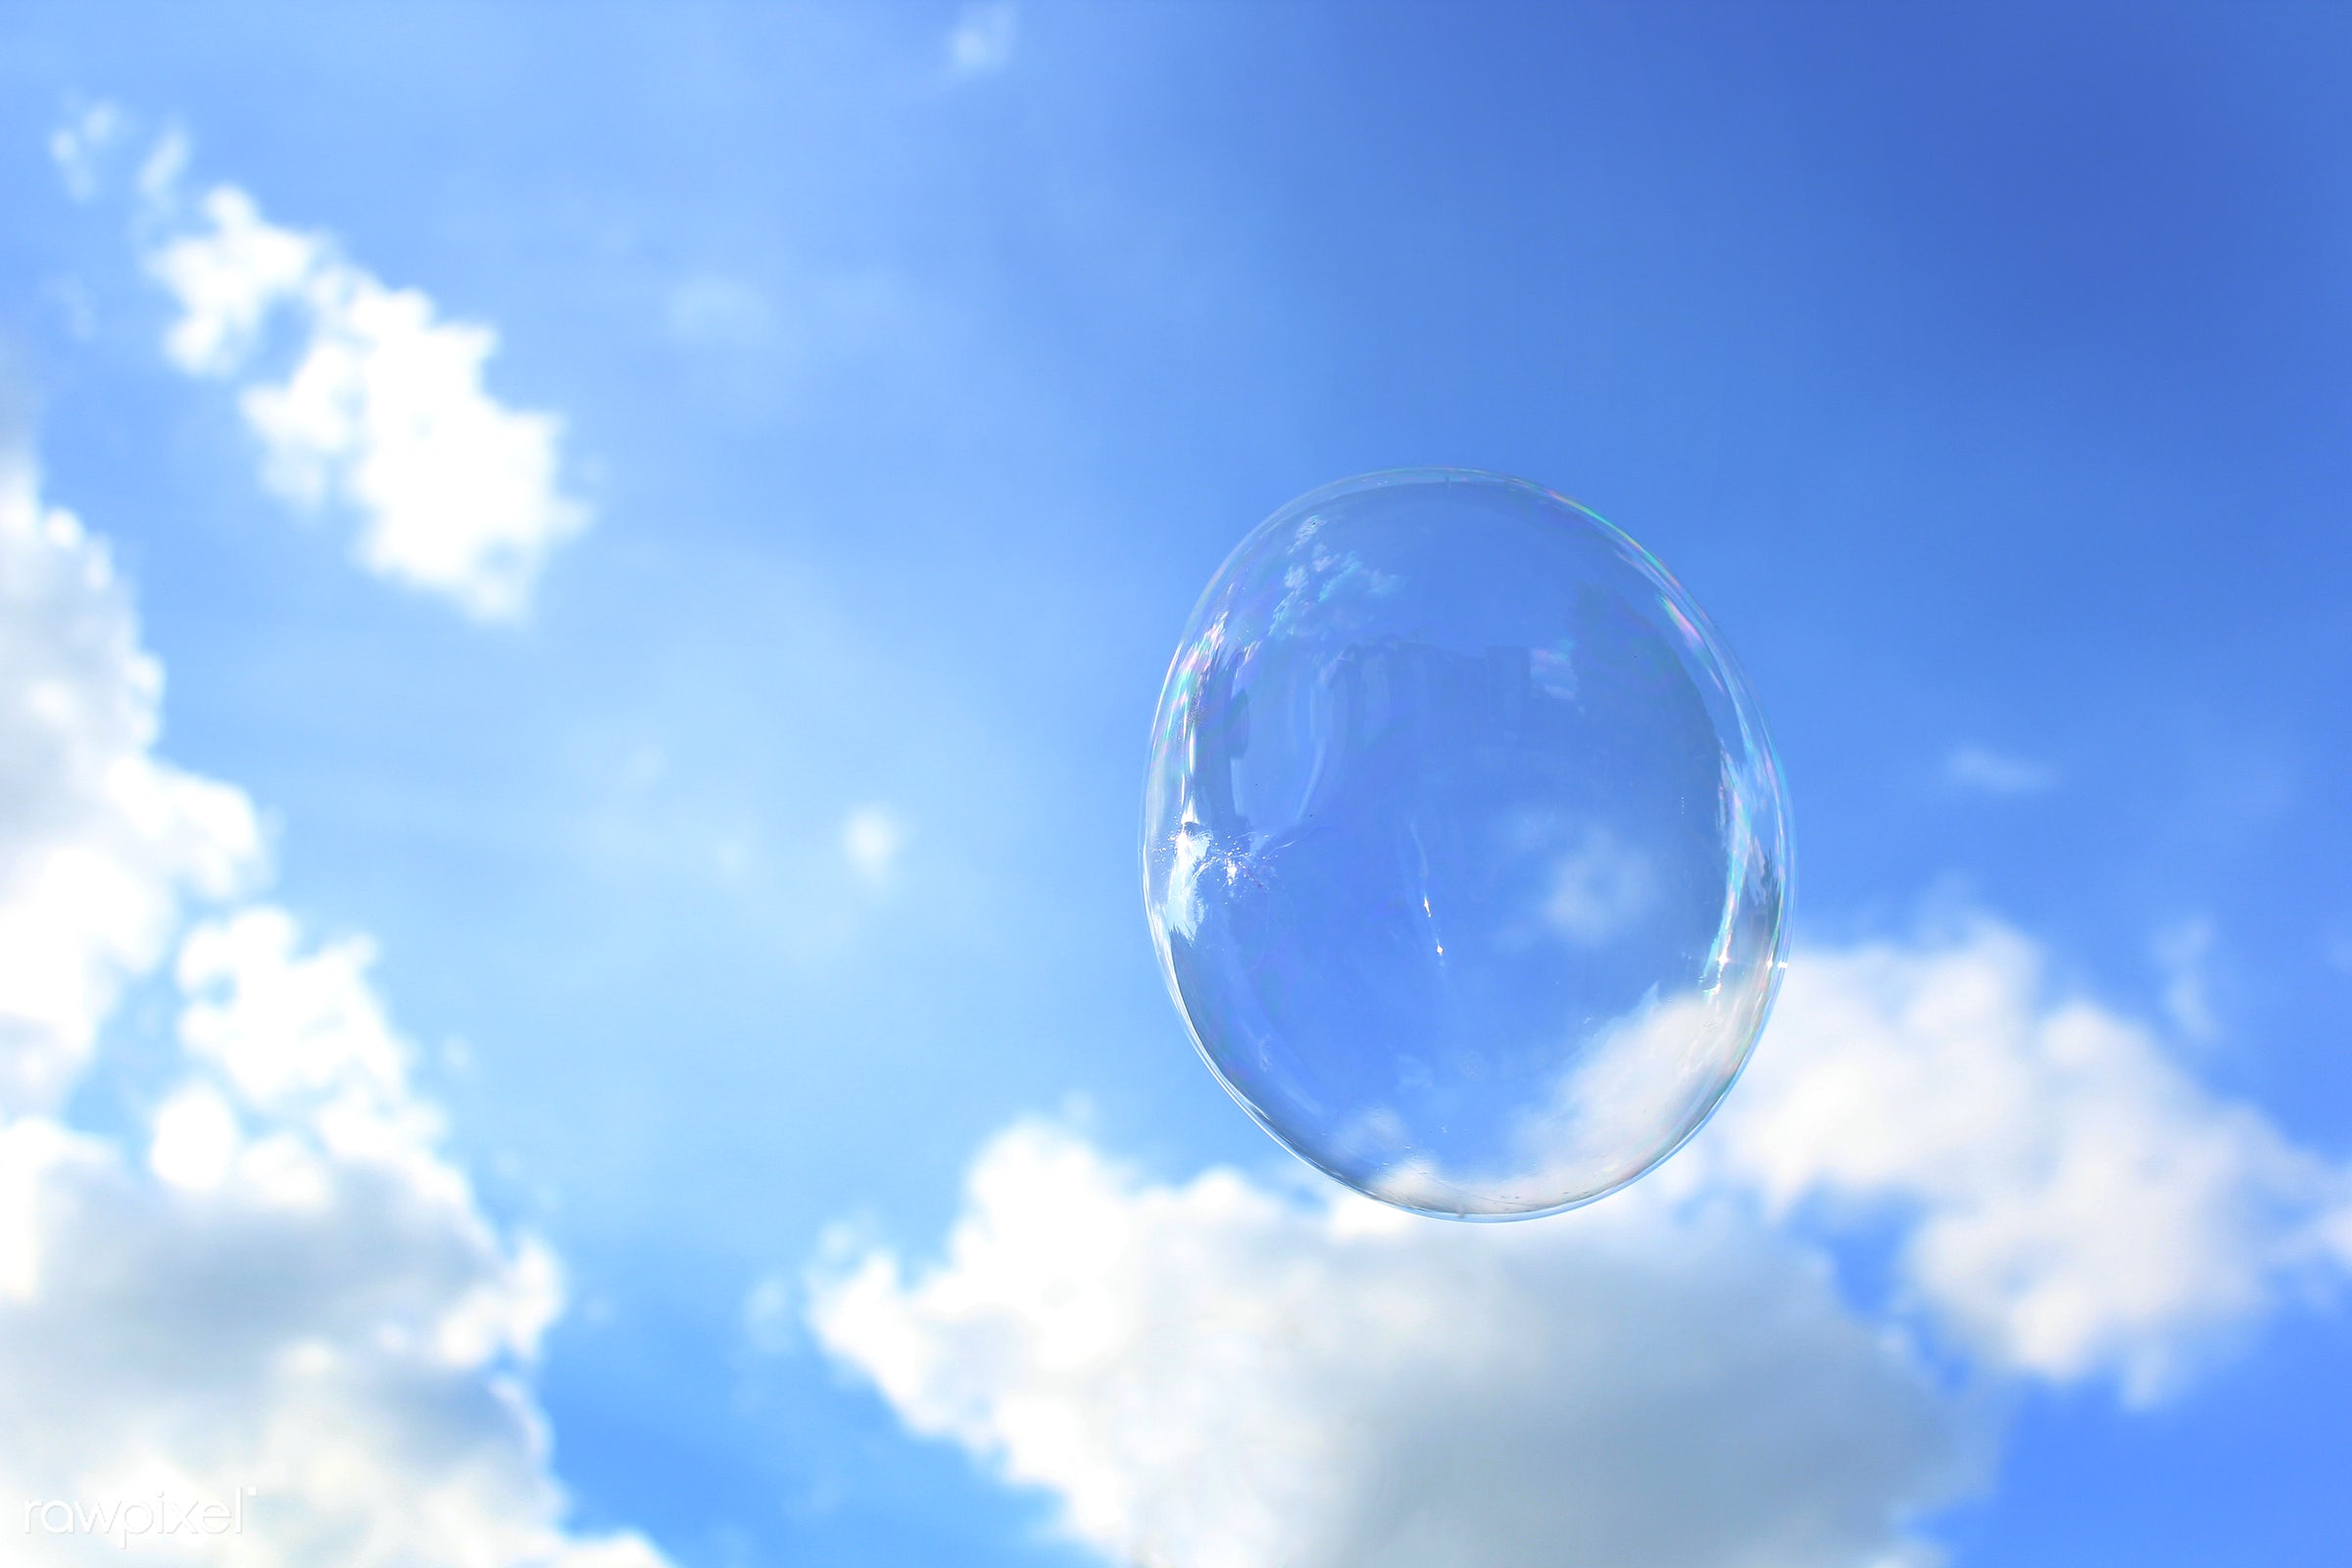 nobody, bubble, blue sky, sky, nature, cloudy, blow, skyscape